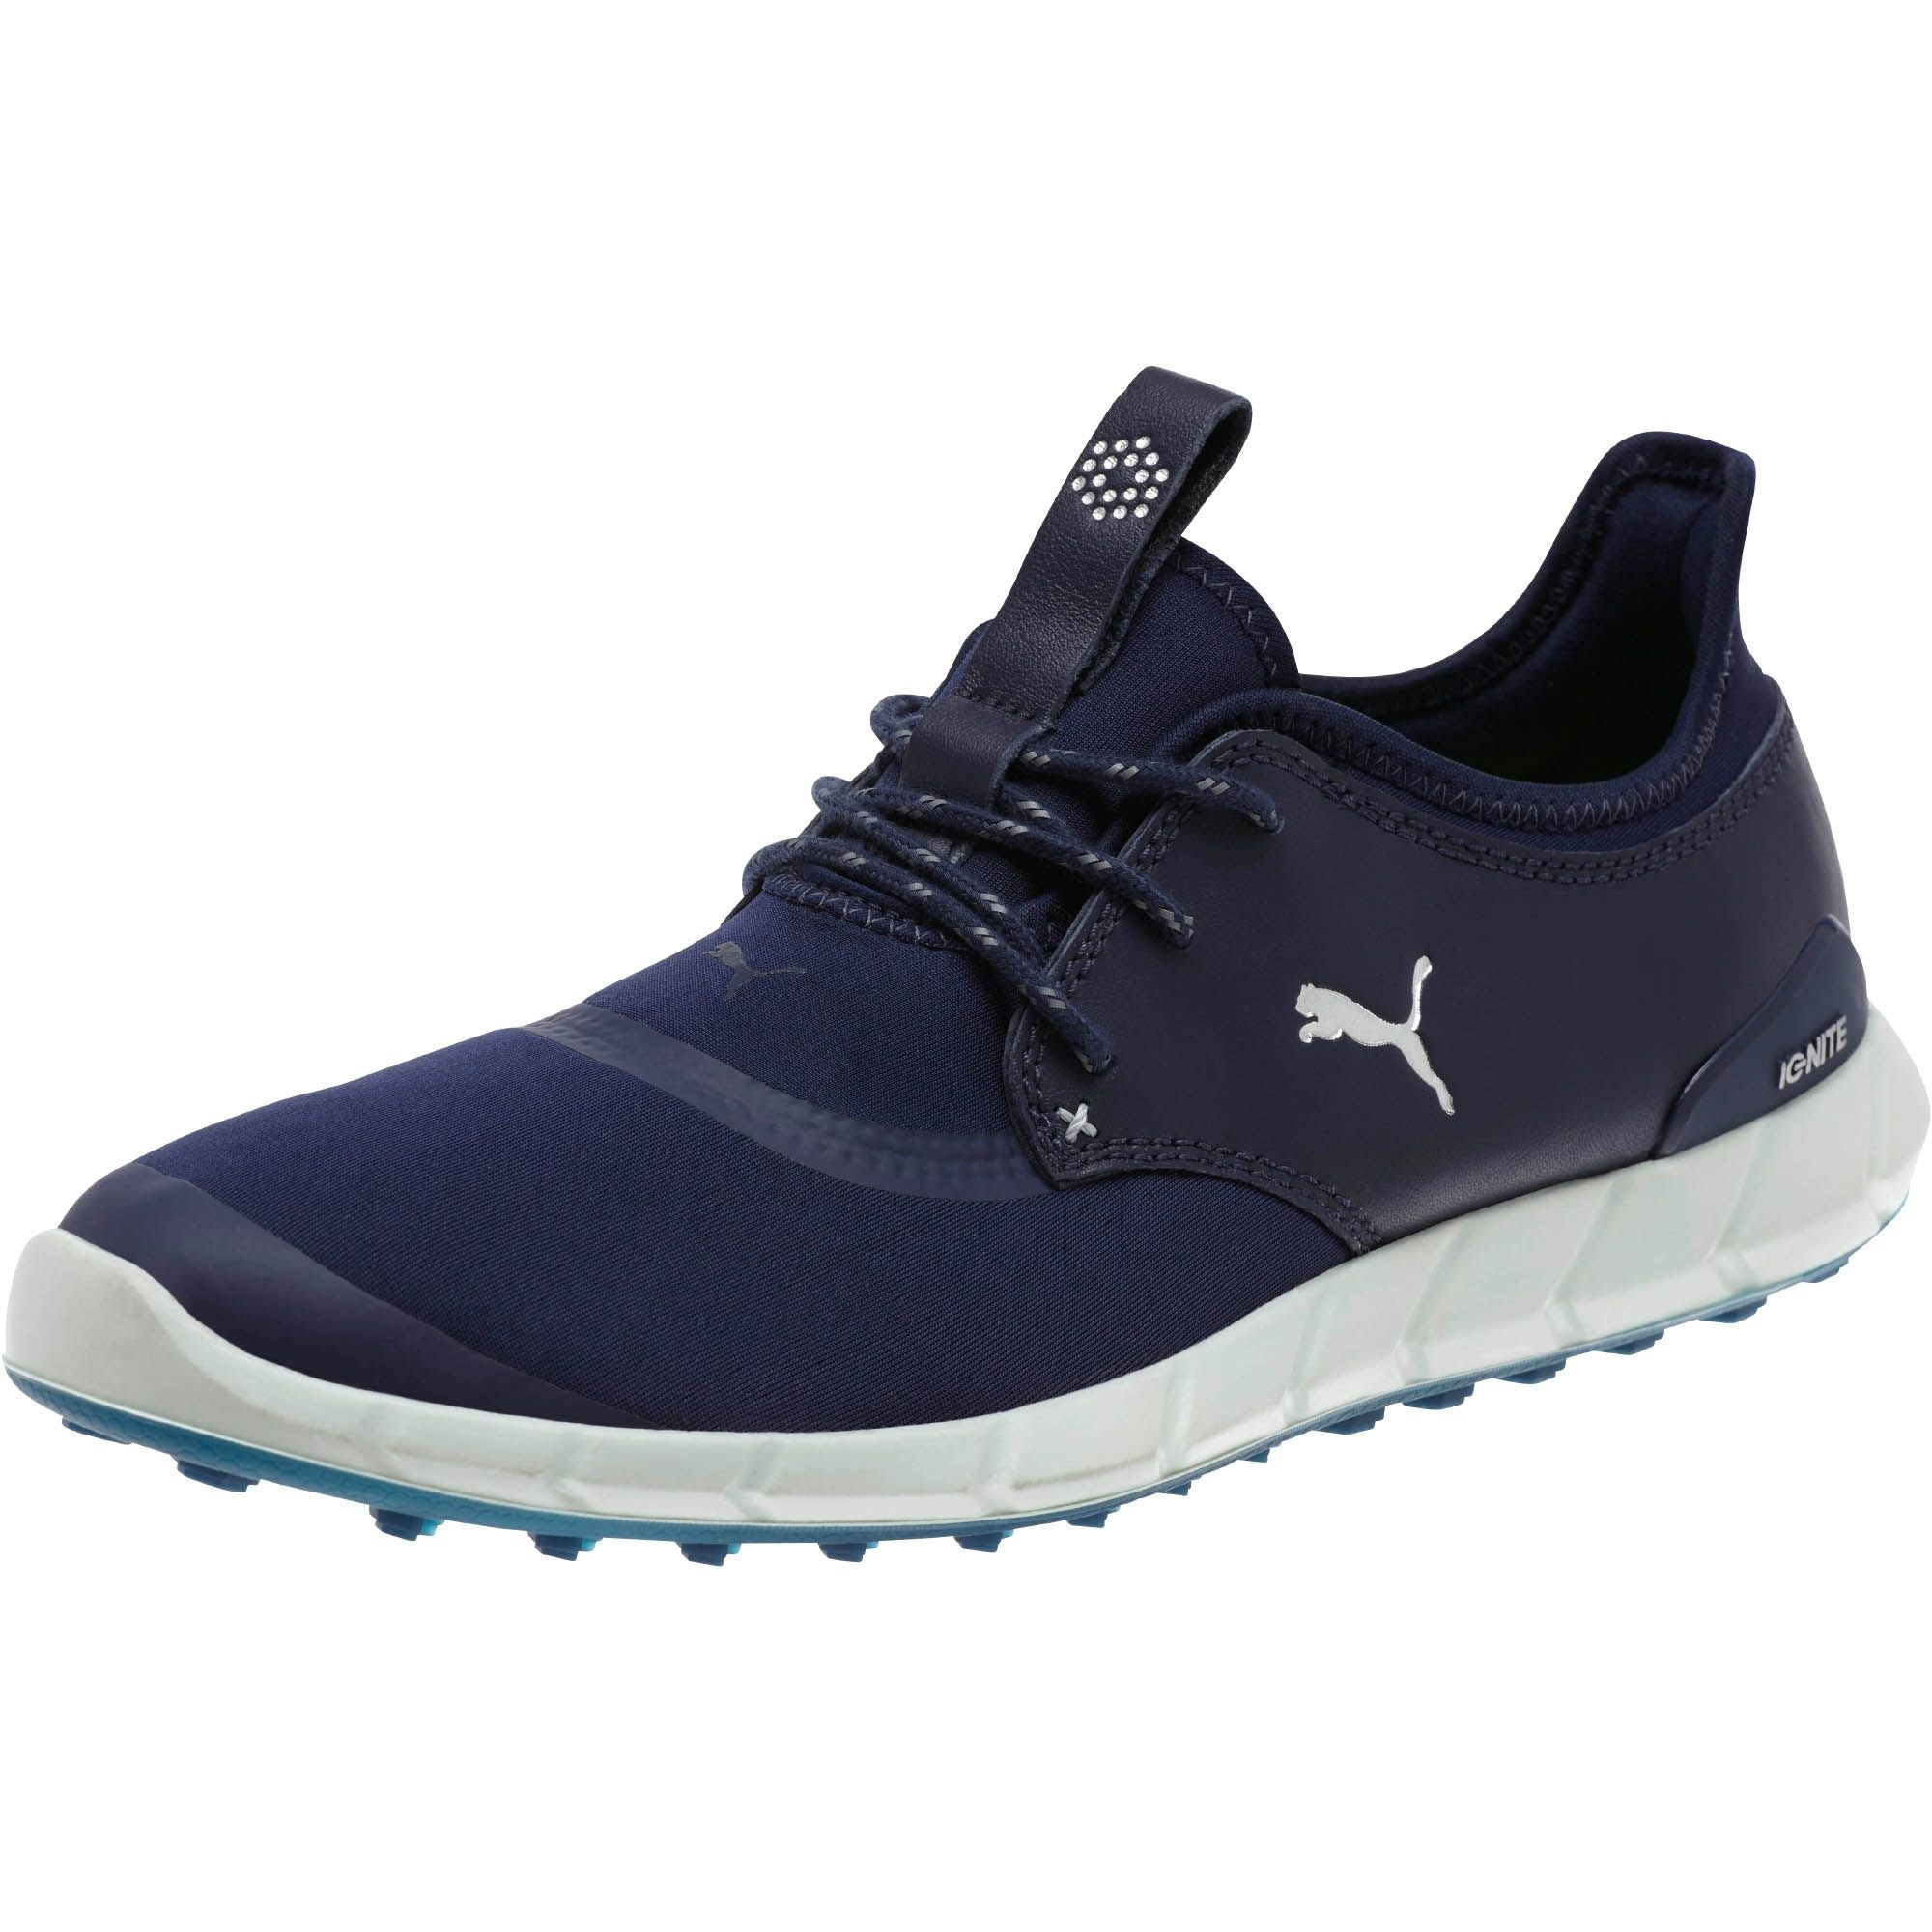 Shop Puma Men S Ignite Spikeless Sport Peacoat Navy Silver White Golf Shoes 189416 03 Overstock 20059182